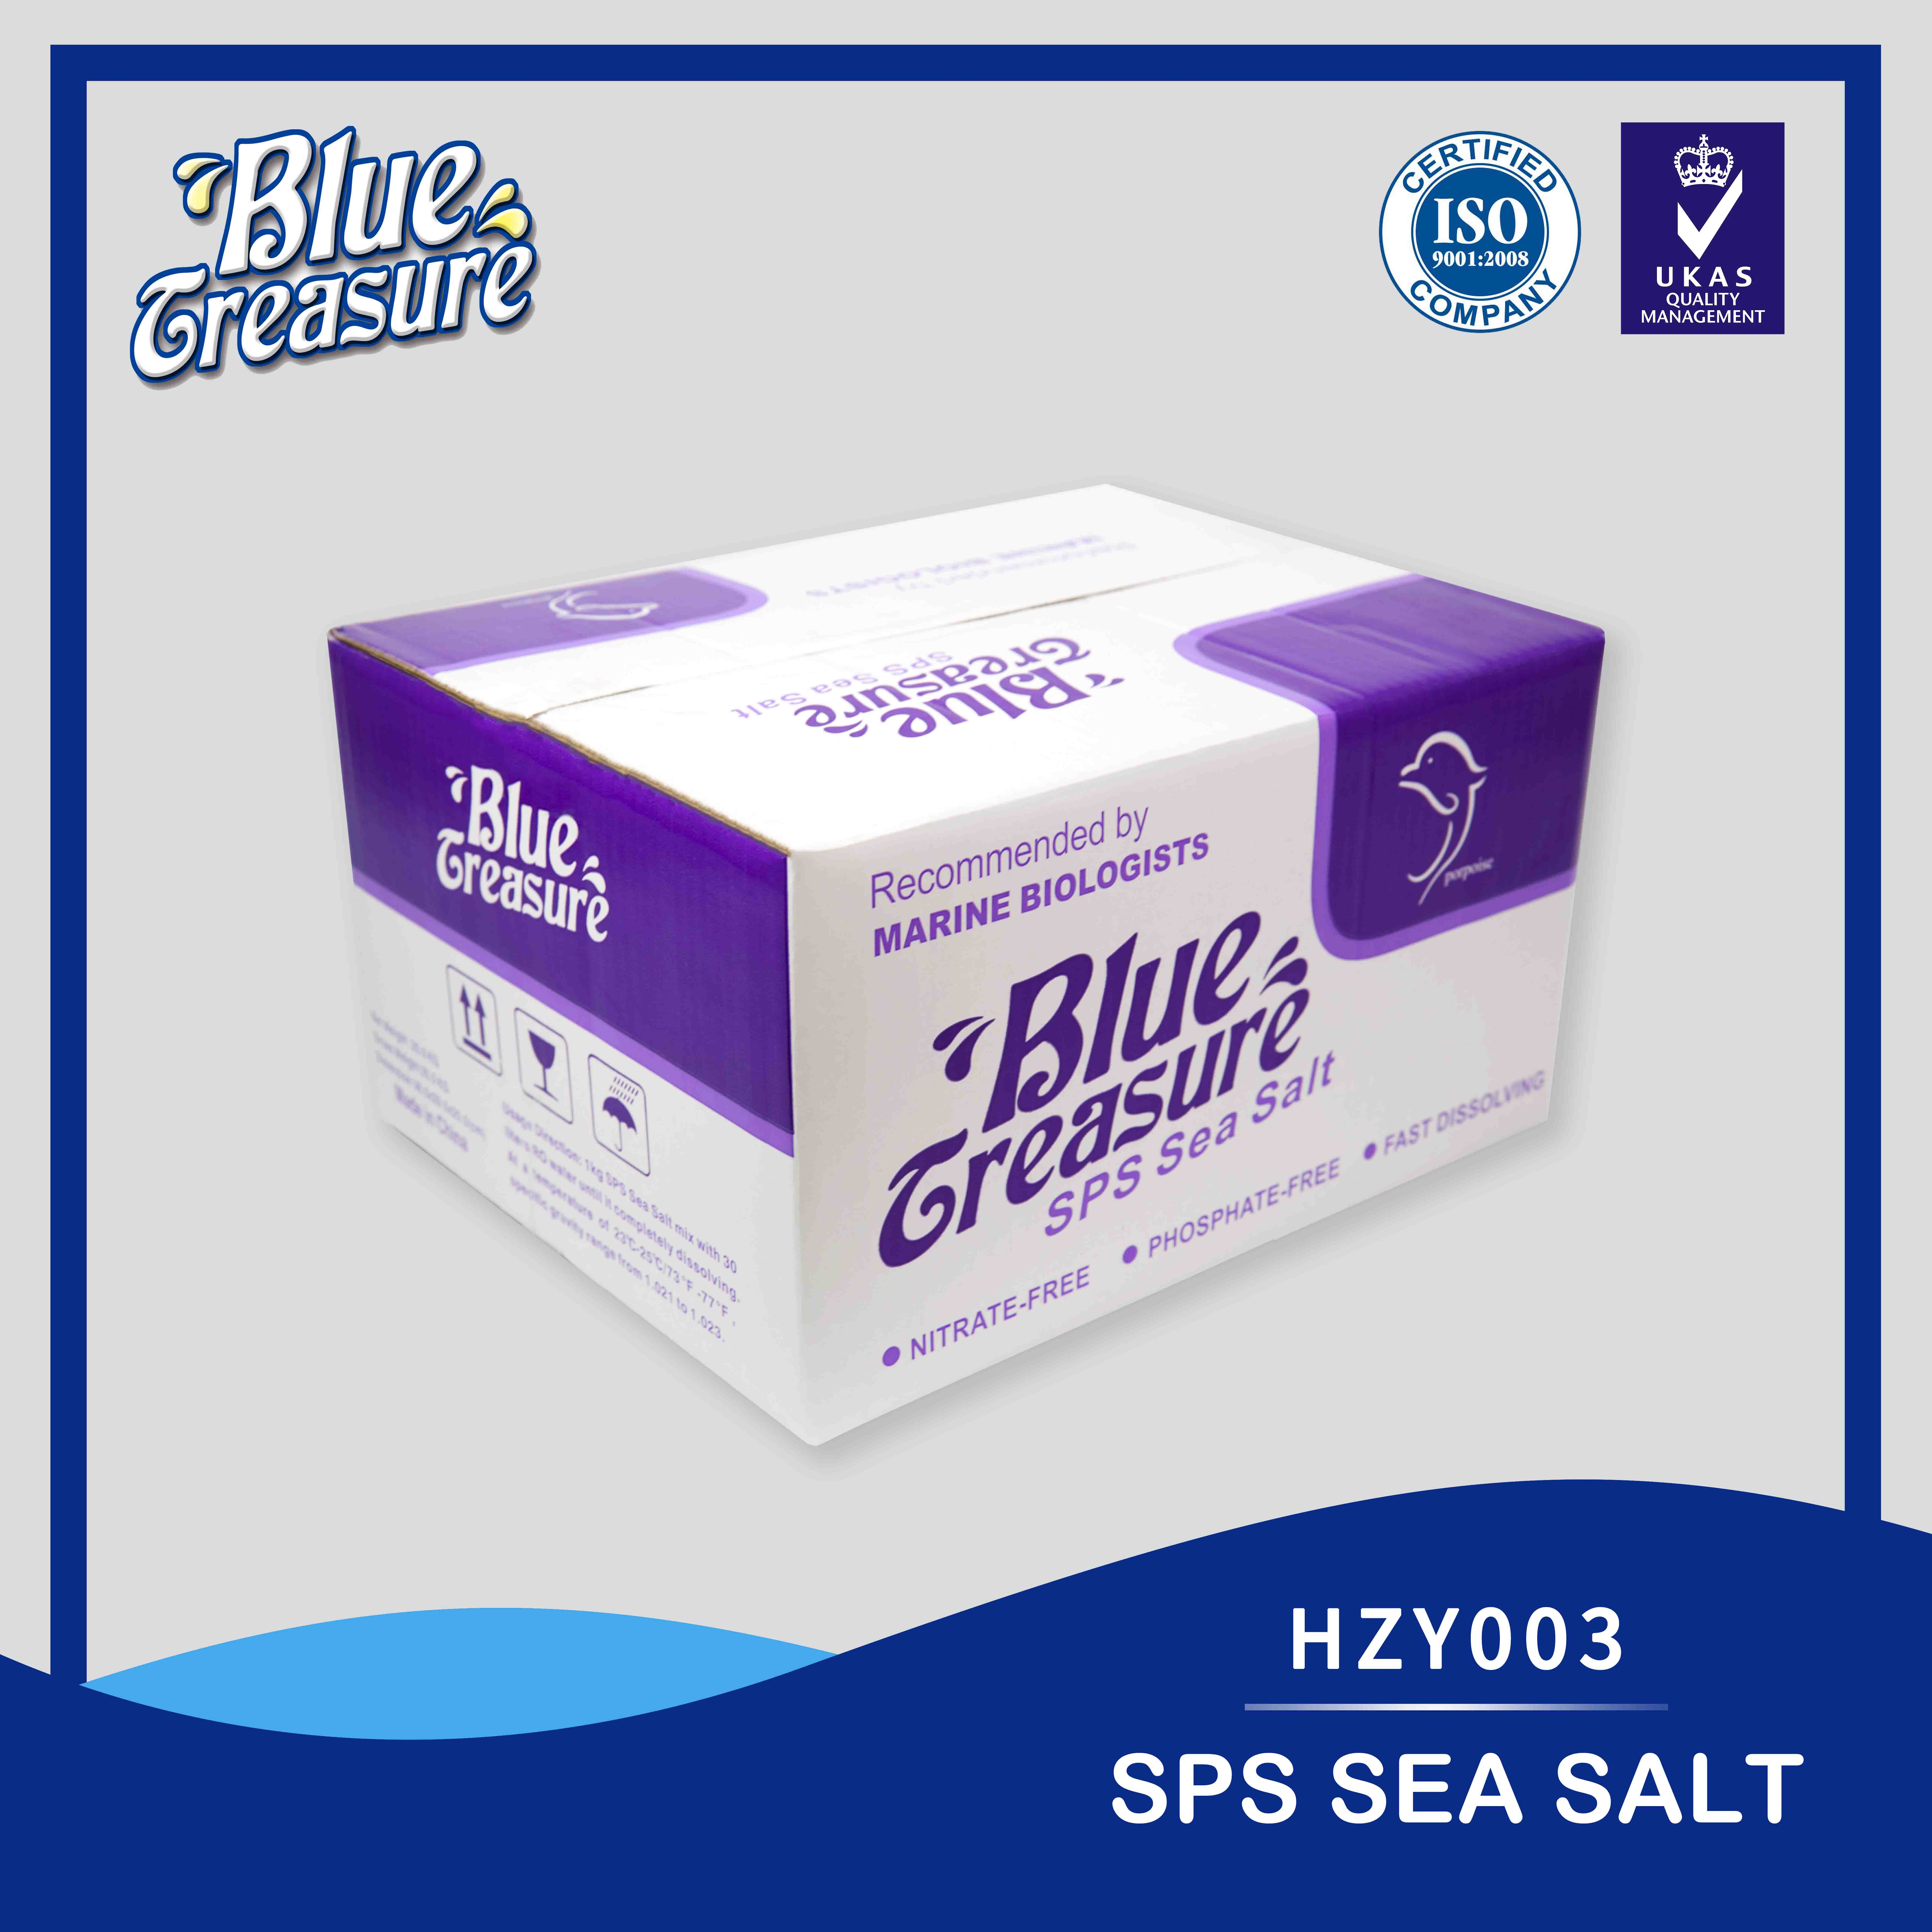 SPS Sea Salt 20kg/bag/carton HZY003